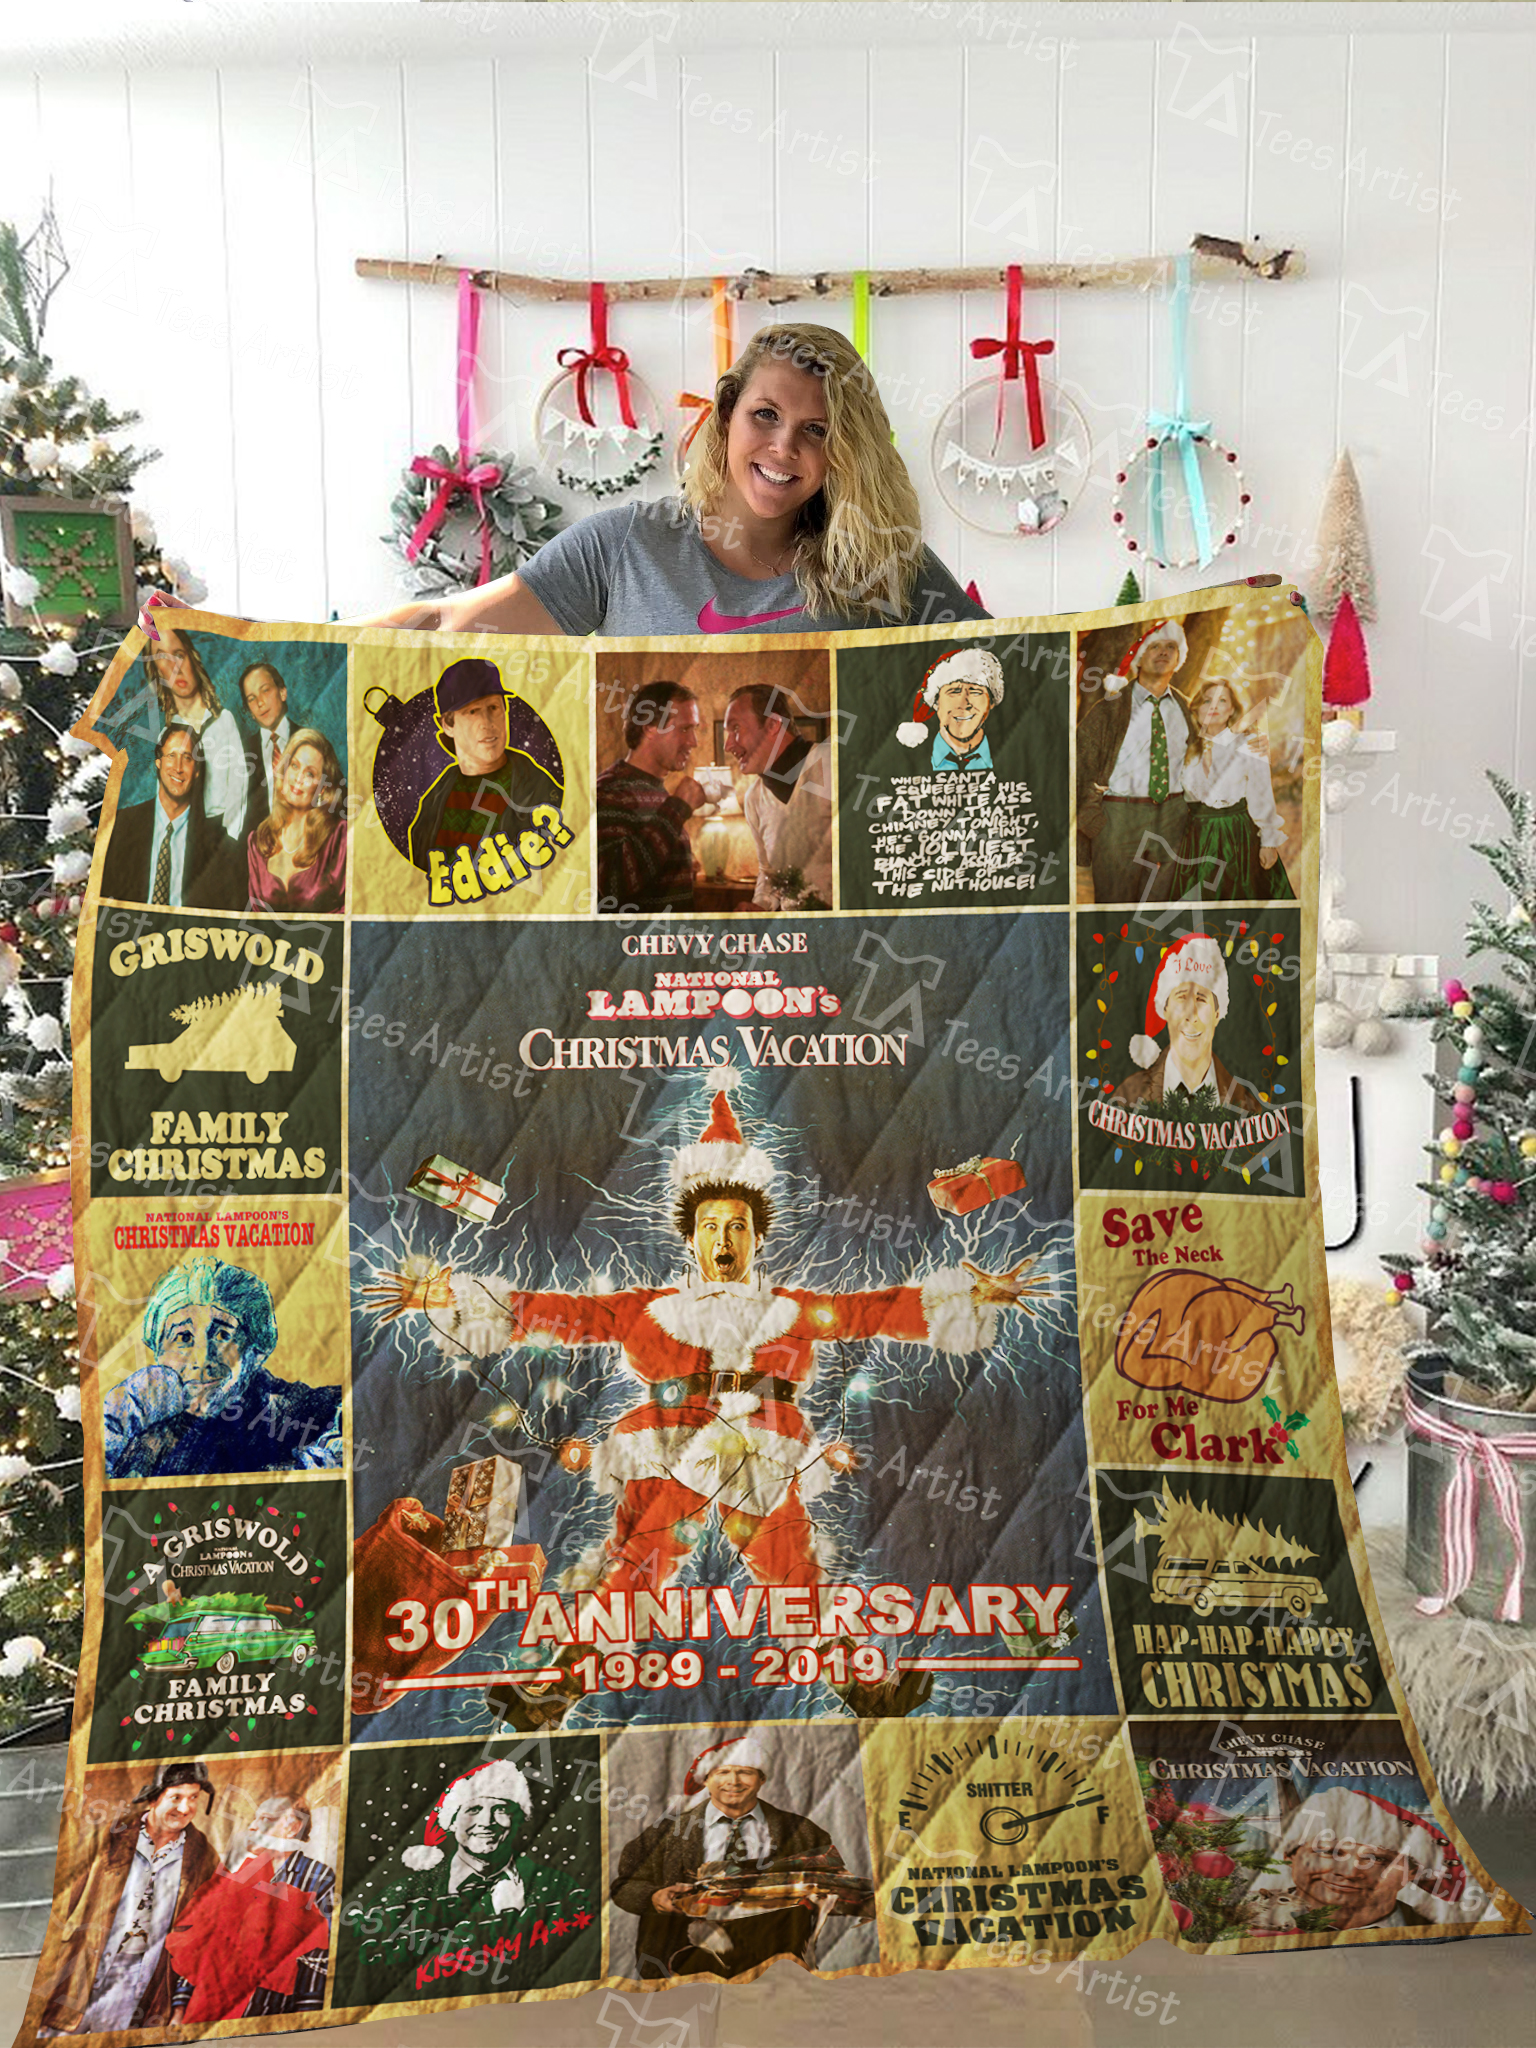 National lampoon's christmas vacation 30th anniversary quilt 2